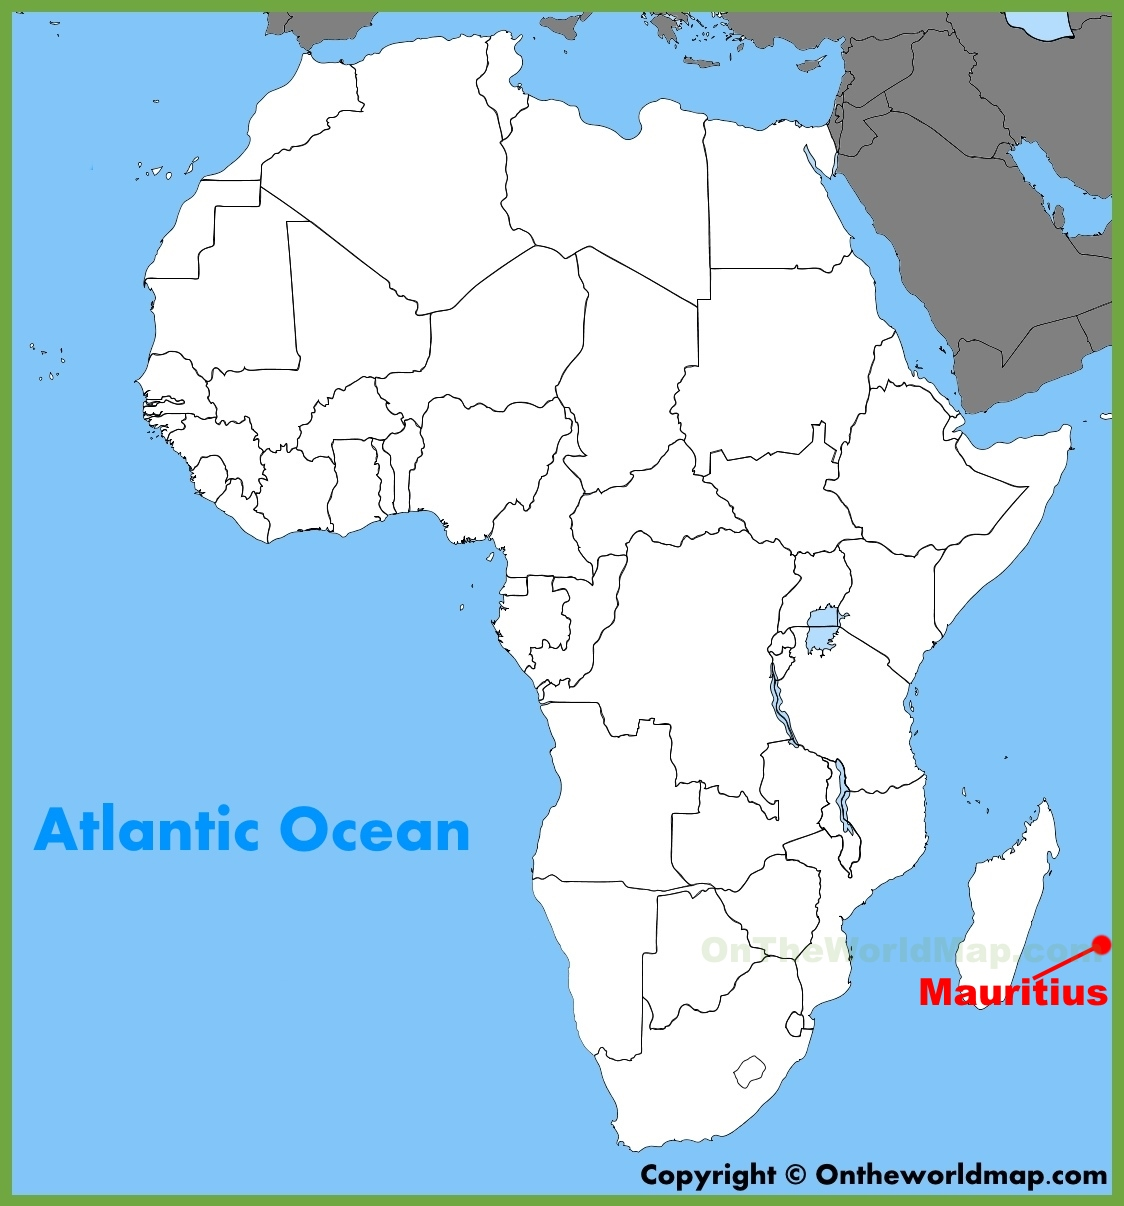 Mauritius location on the Africa map